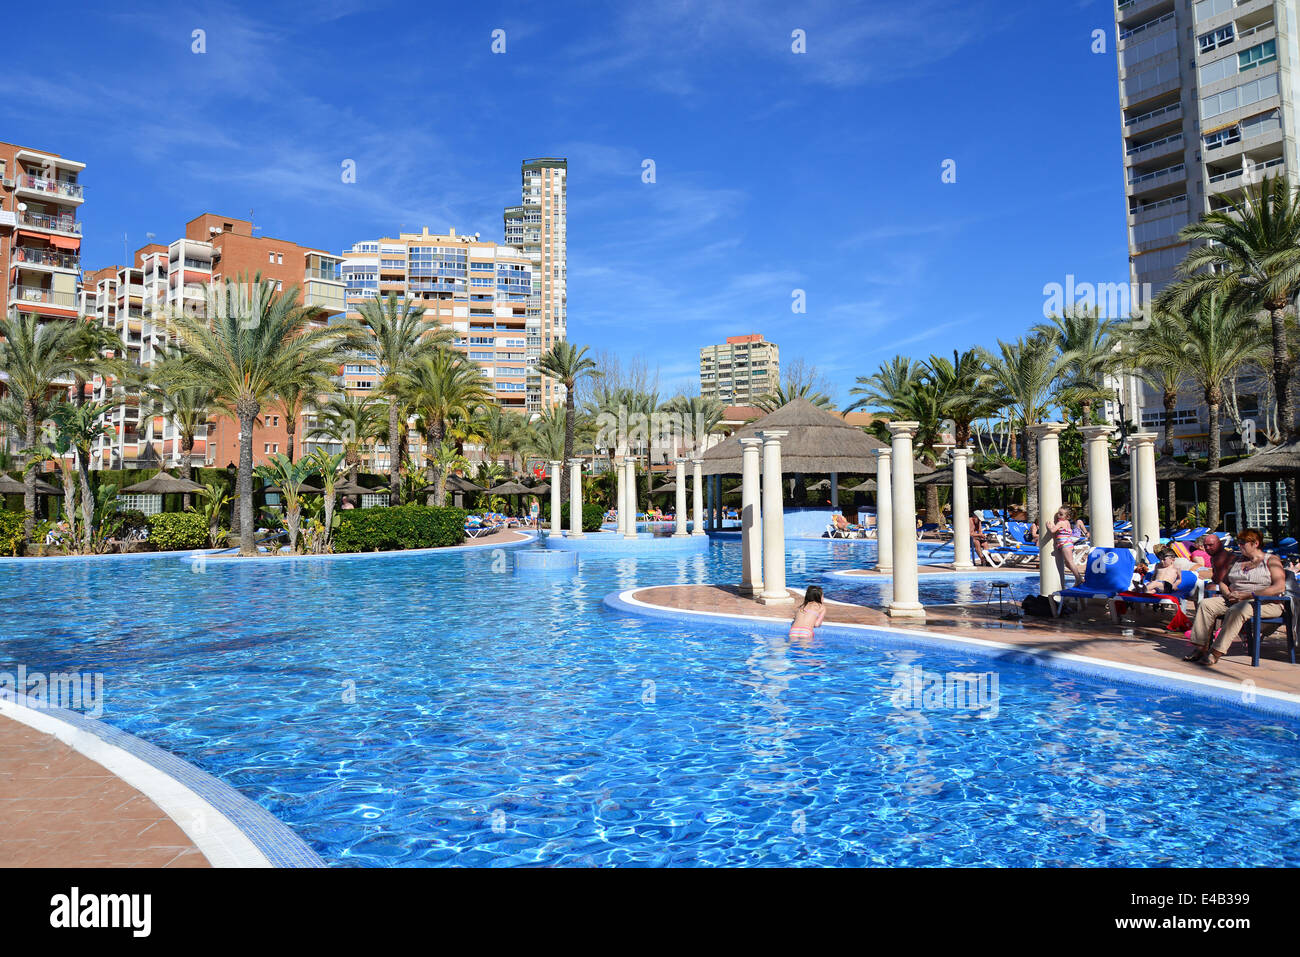 Swimming pool at sol pelicanos ocas hotel calle gerona - Hotels in madrid spain with swimming pool ...